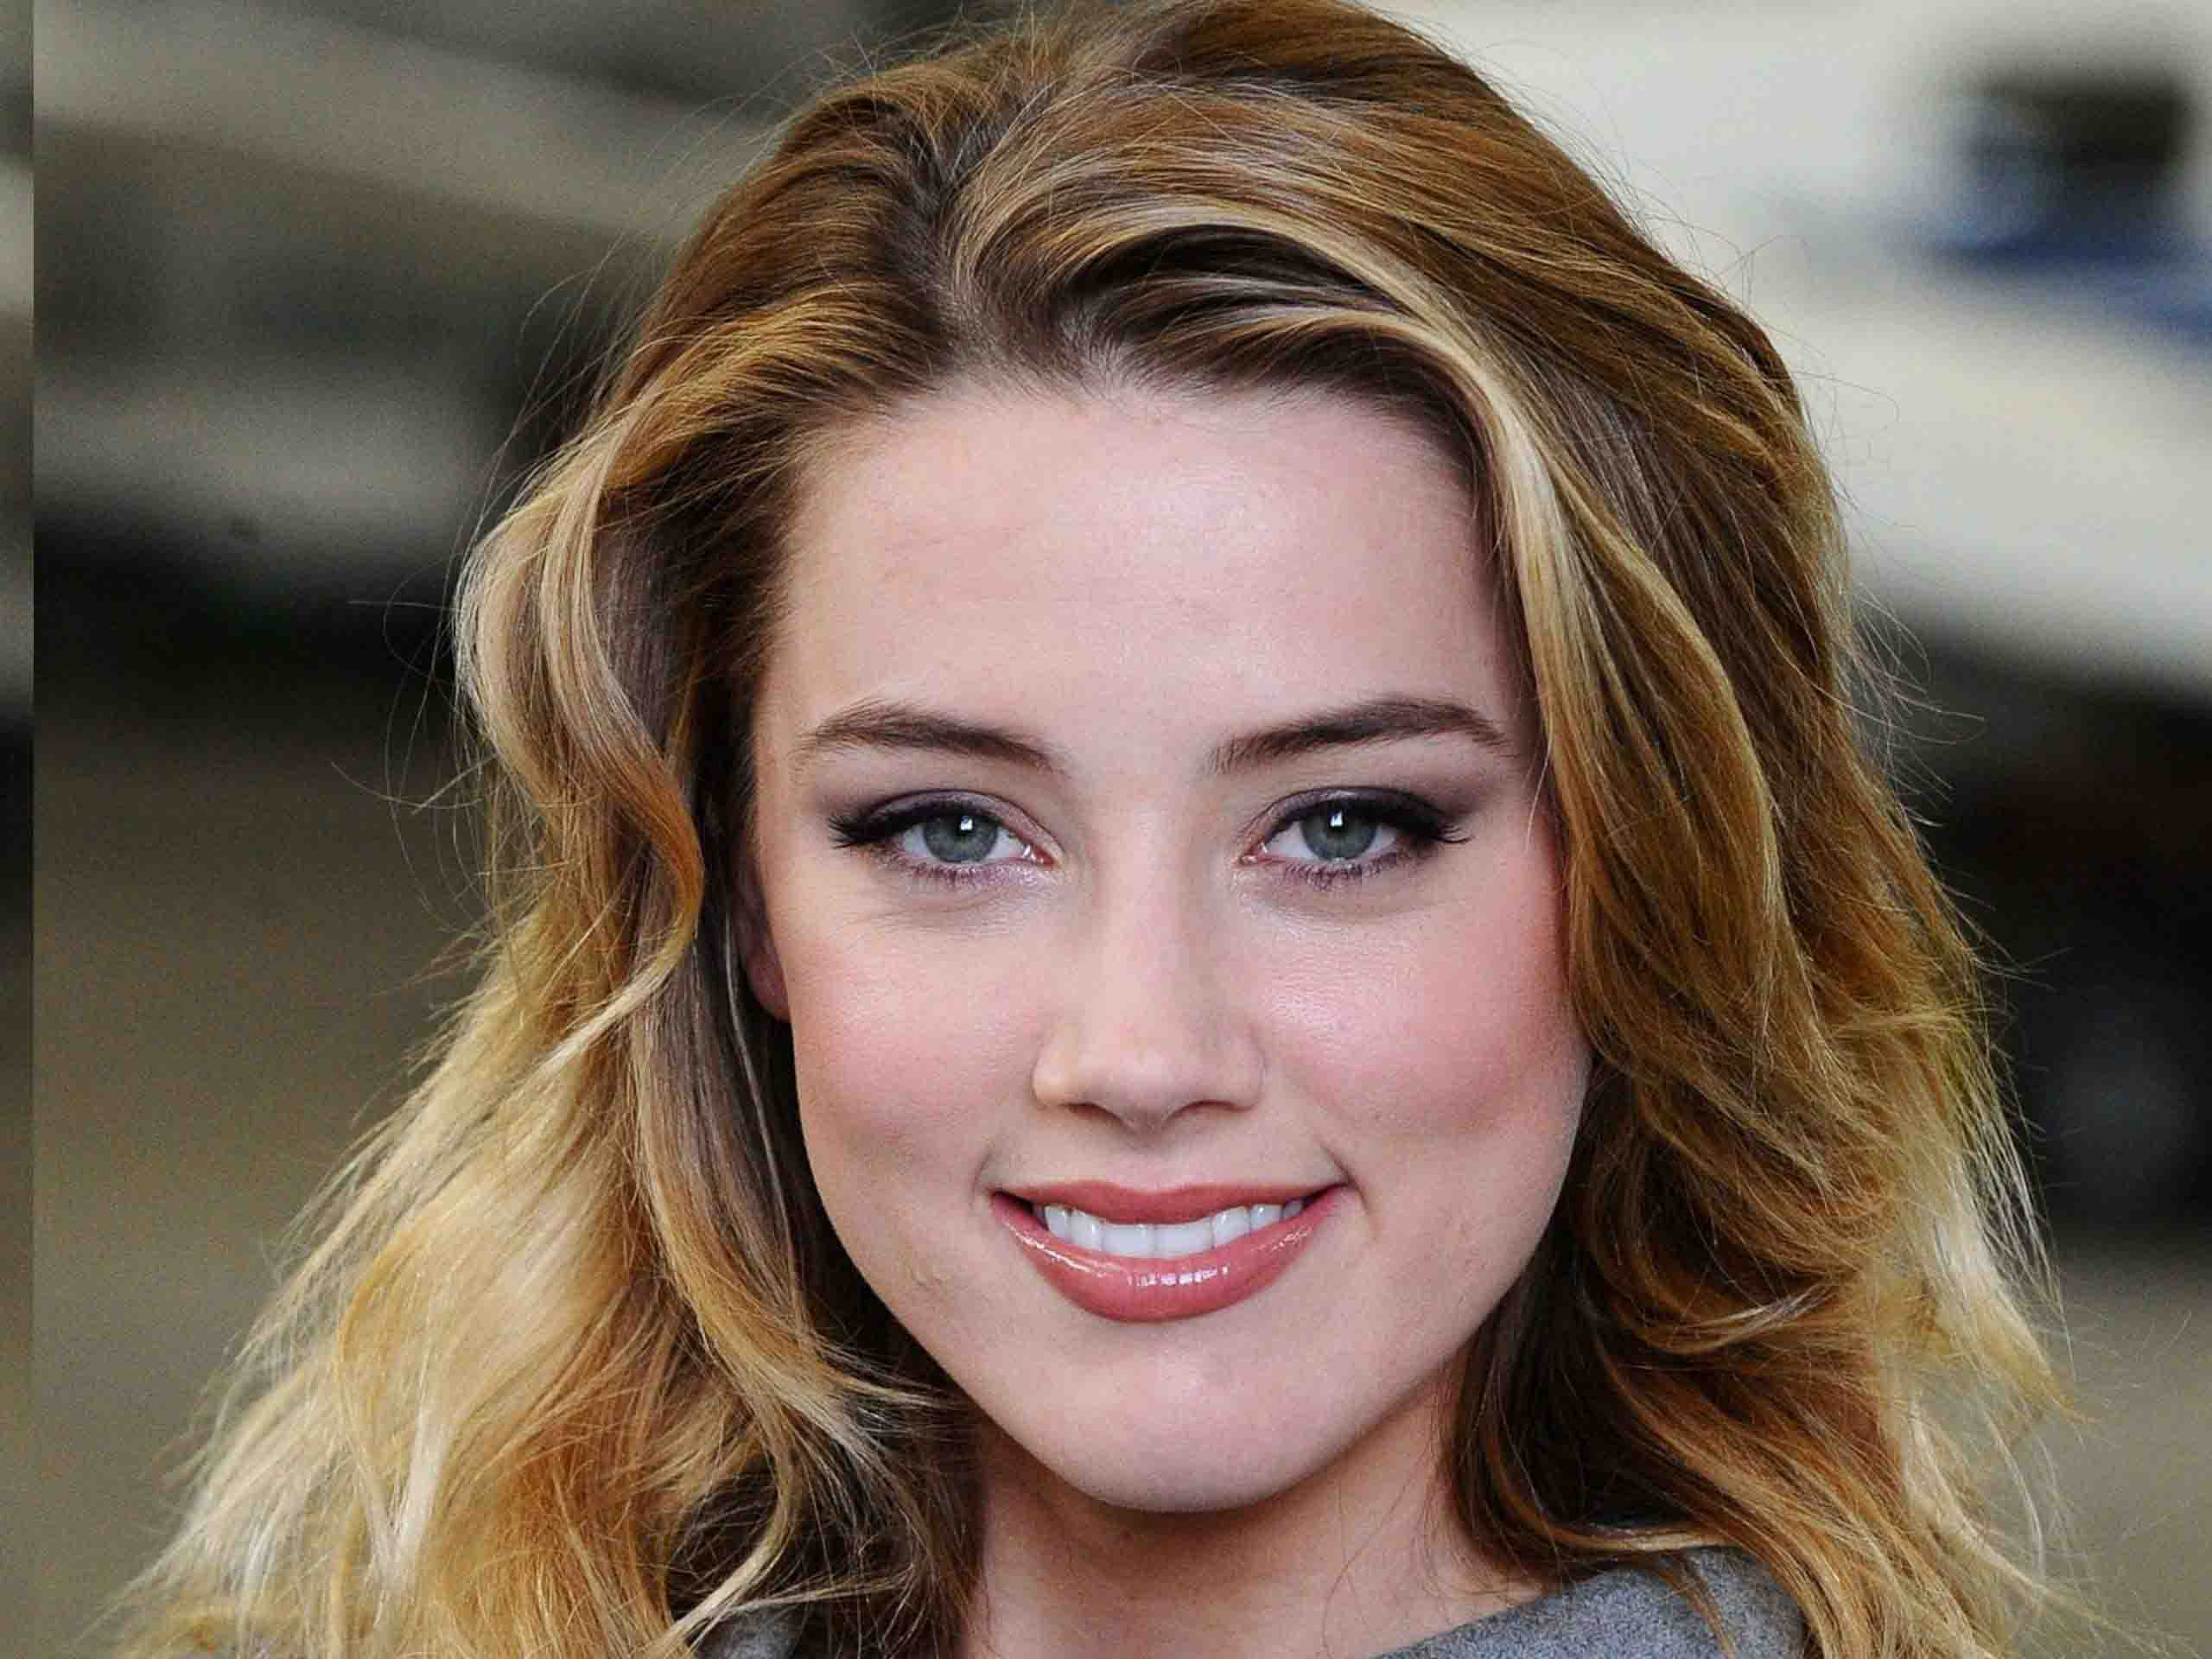 Amber Heard   Biography, Career, Facts, Relationships, Net